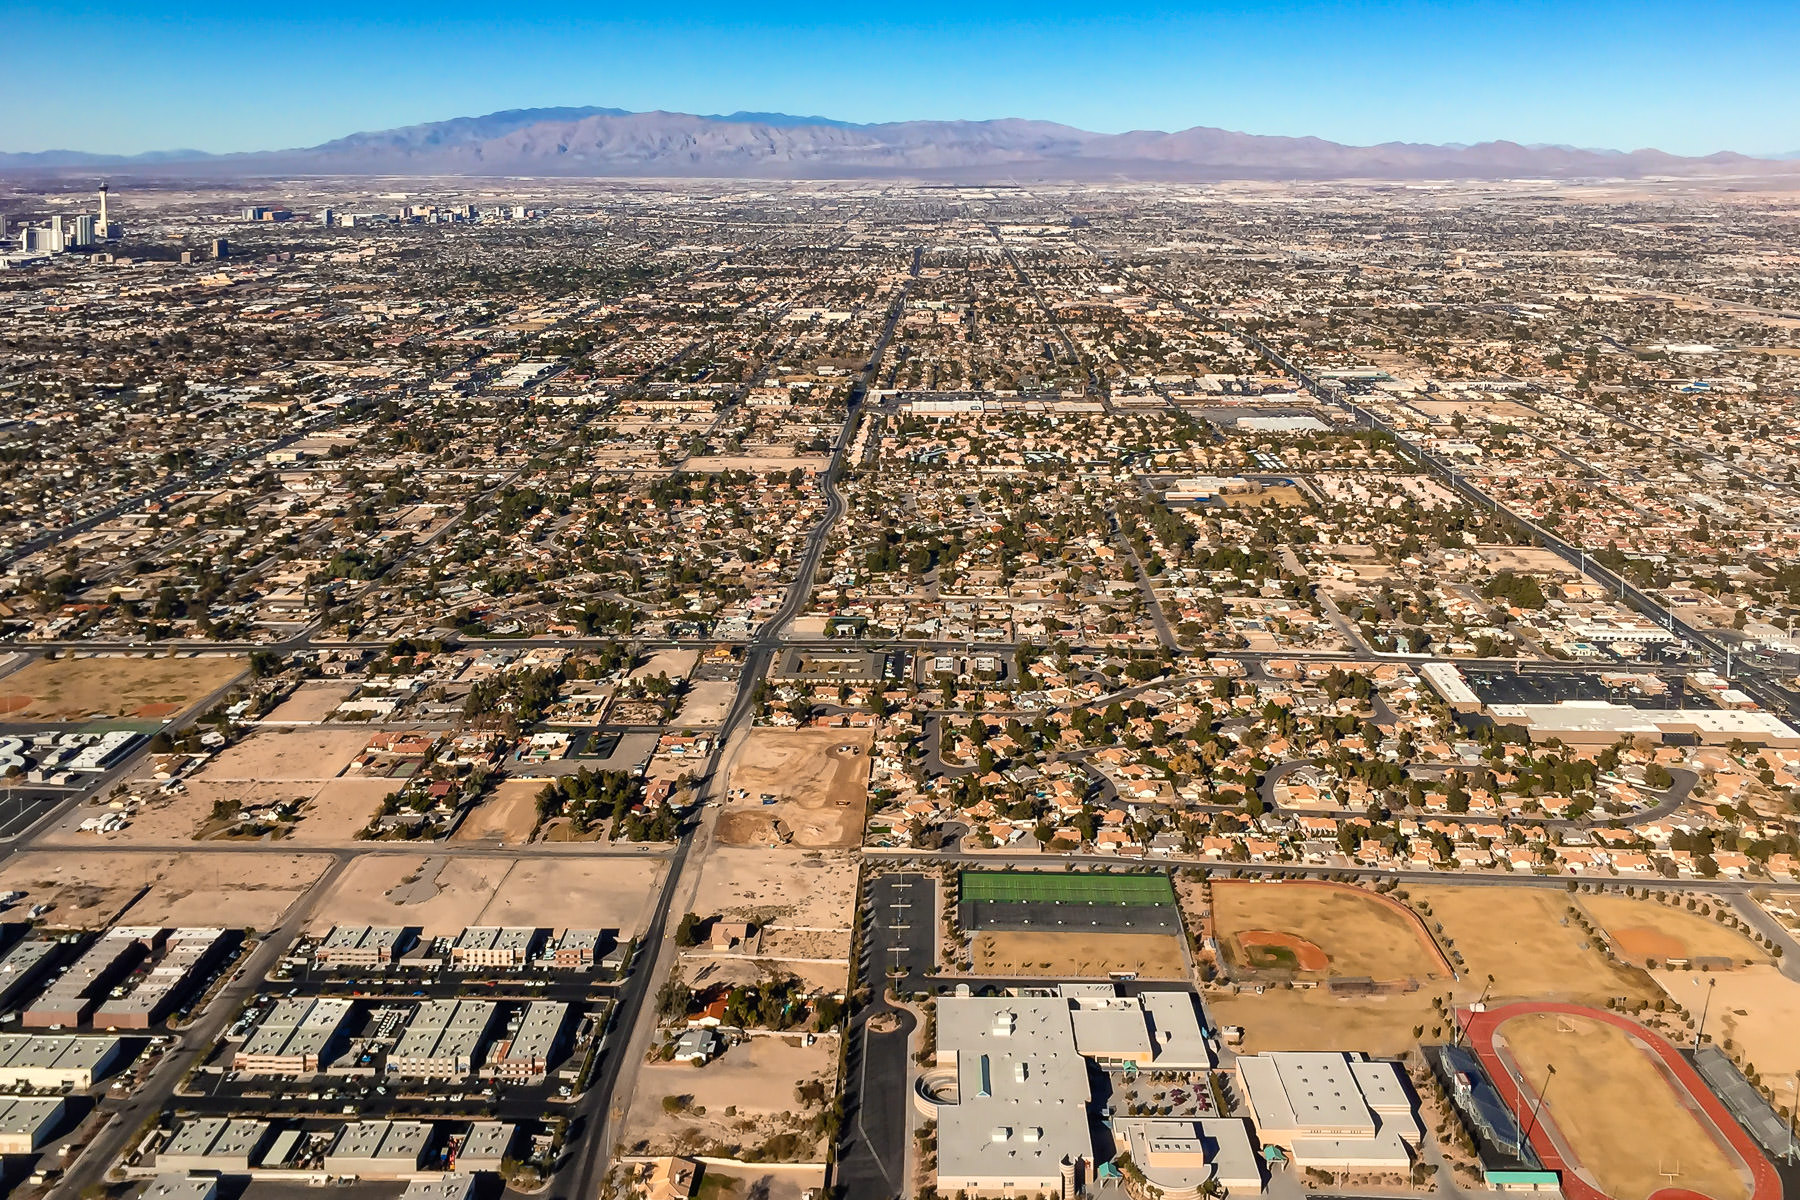 The city grid of Las Vegas rises from the Nevada desert.